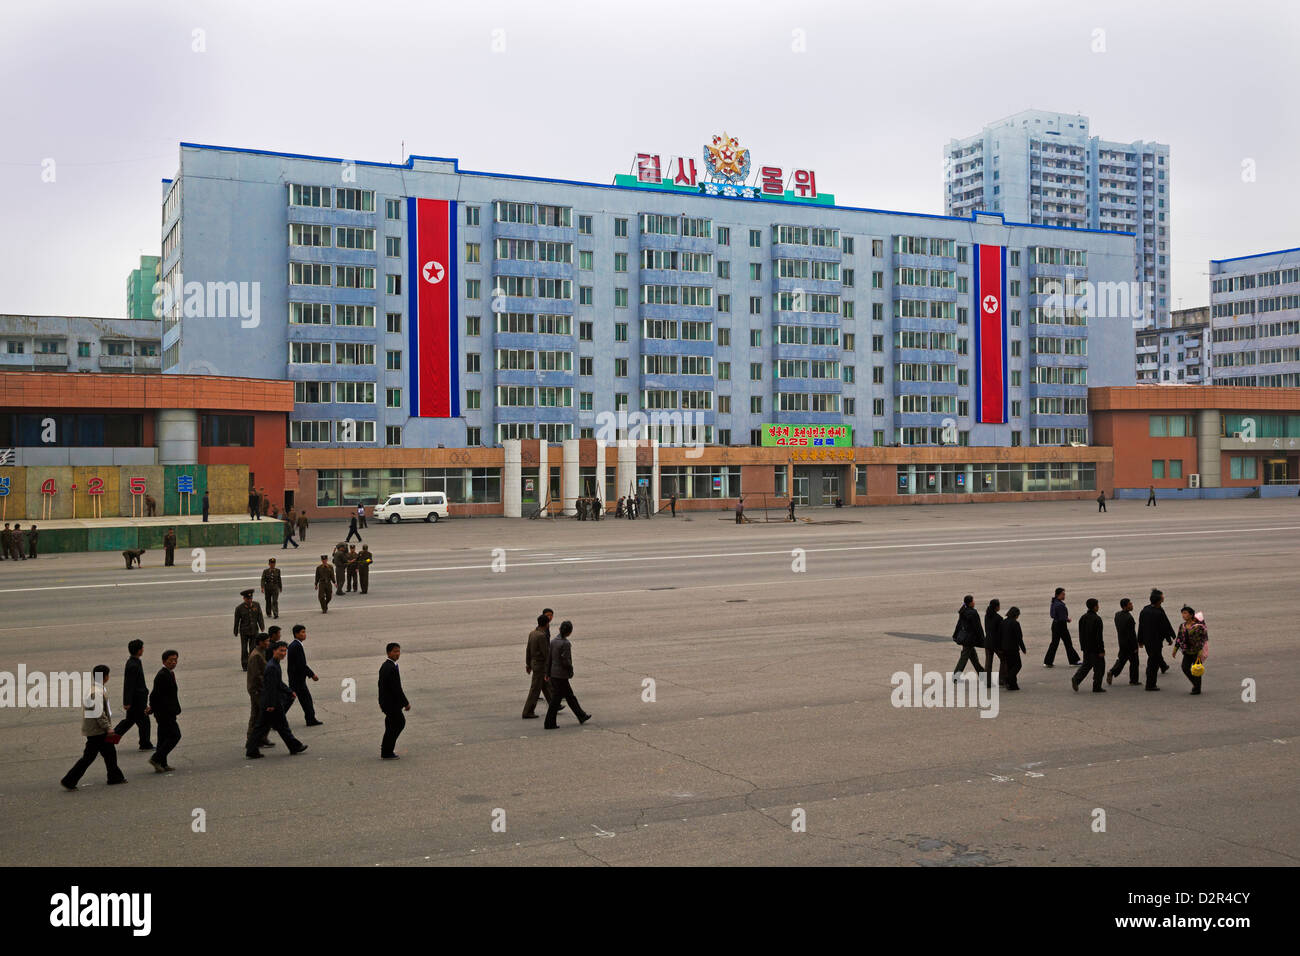 Typical city architecture, Pyongyang, Democratic People's Republic of Korea (DPRK), North Korea, Asia - Stock Image